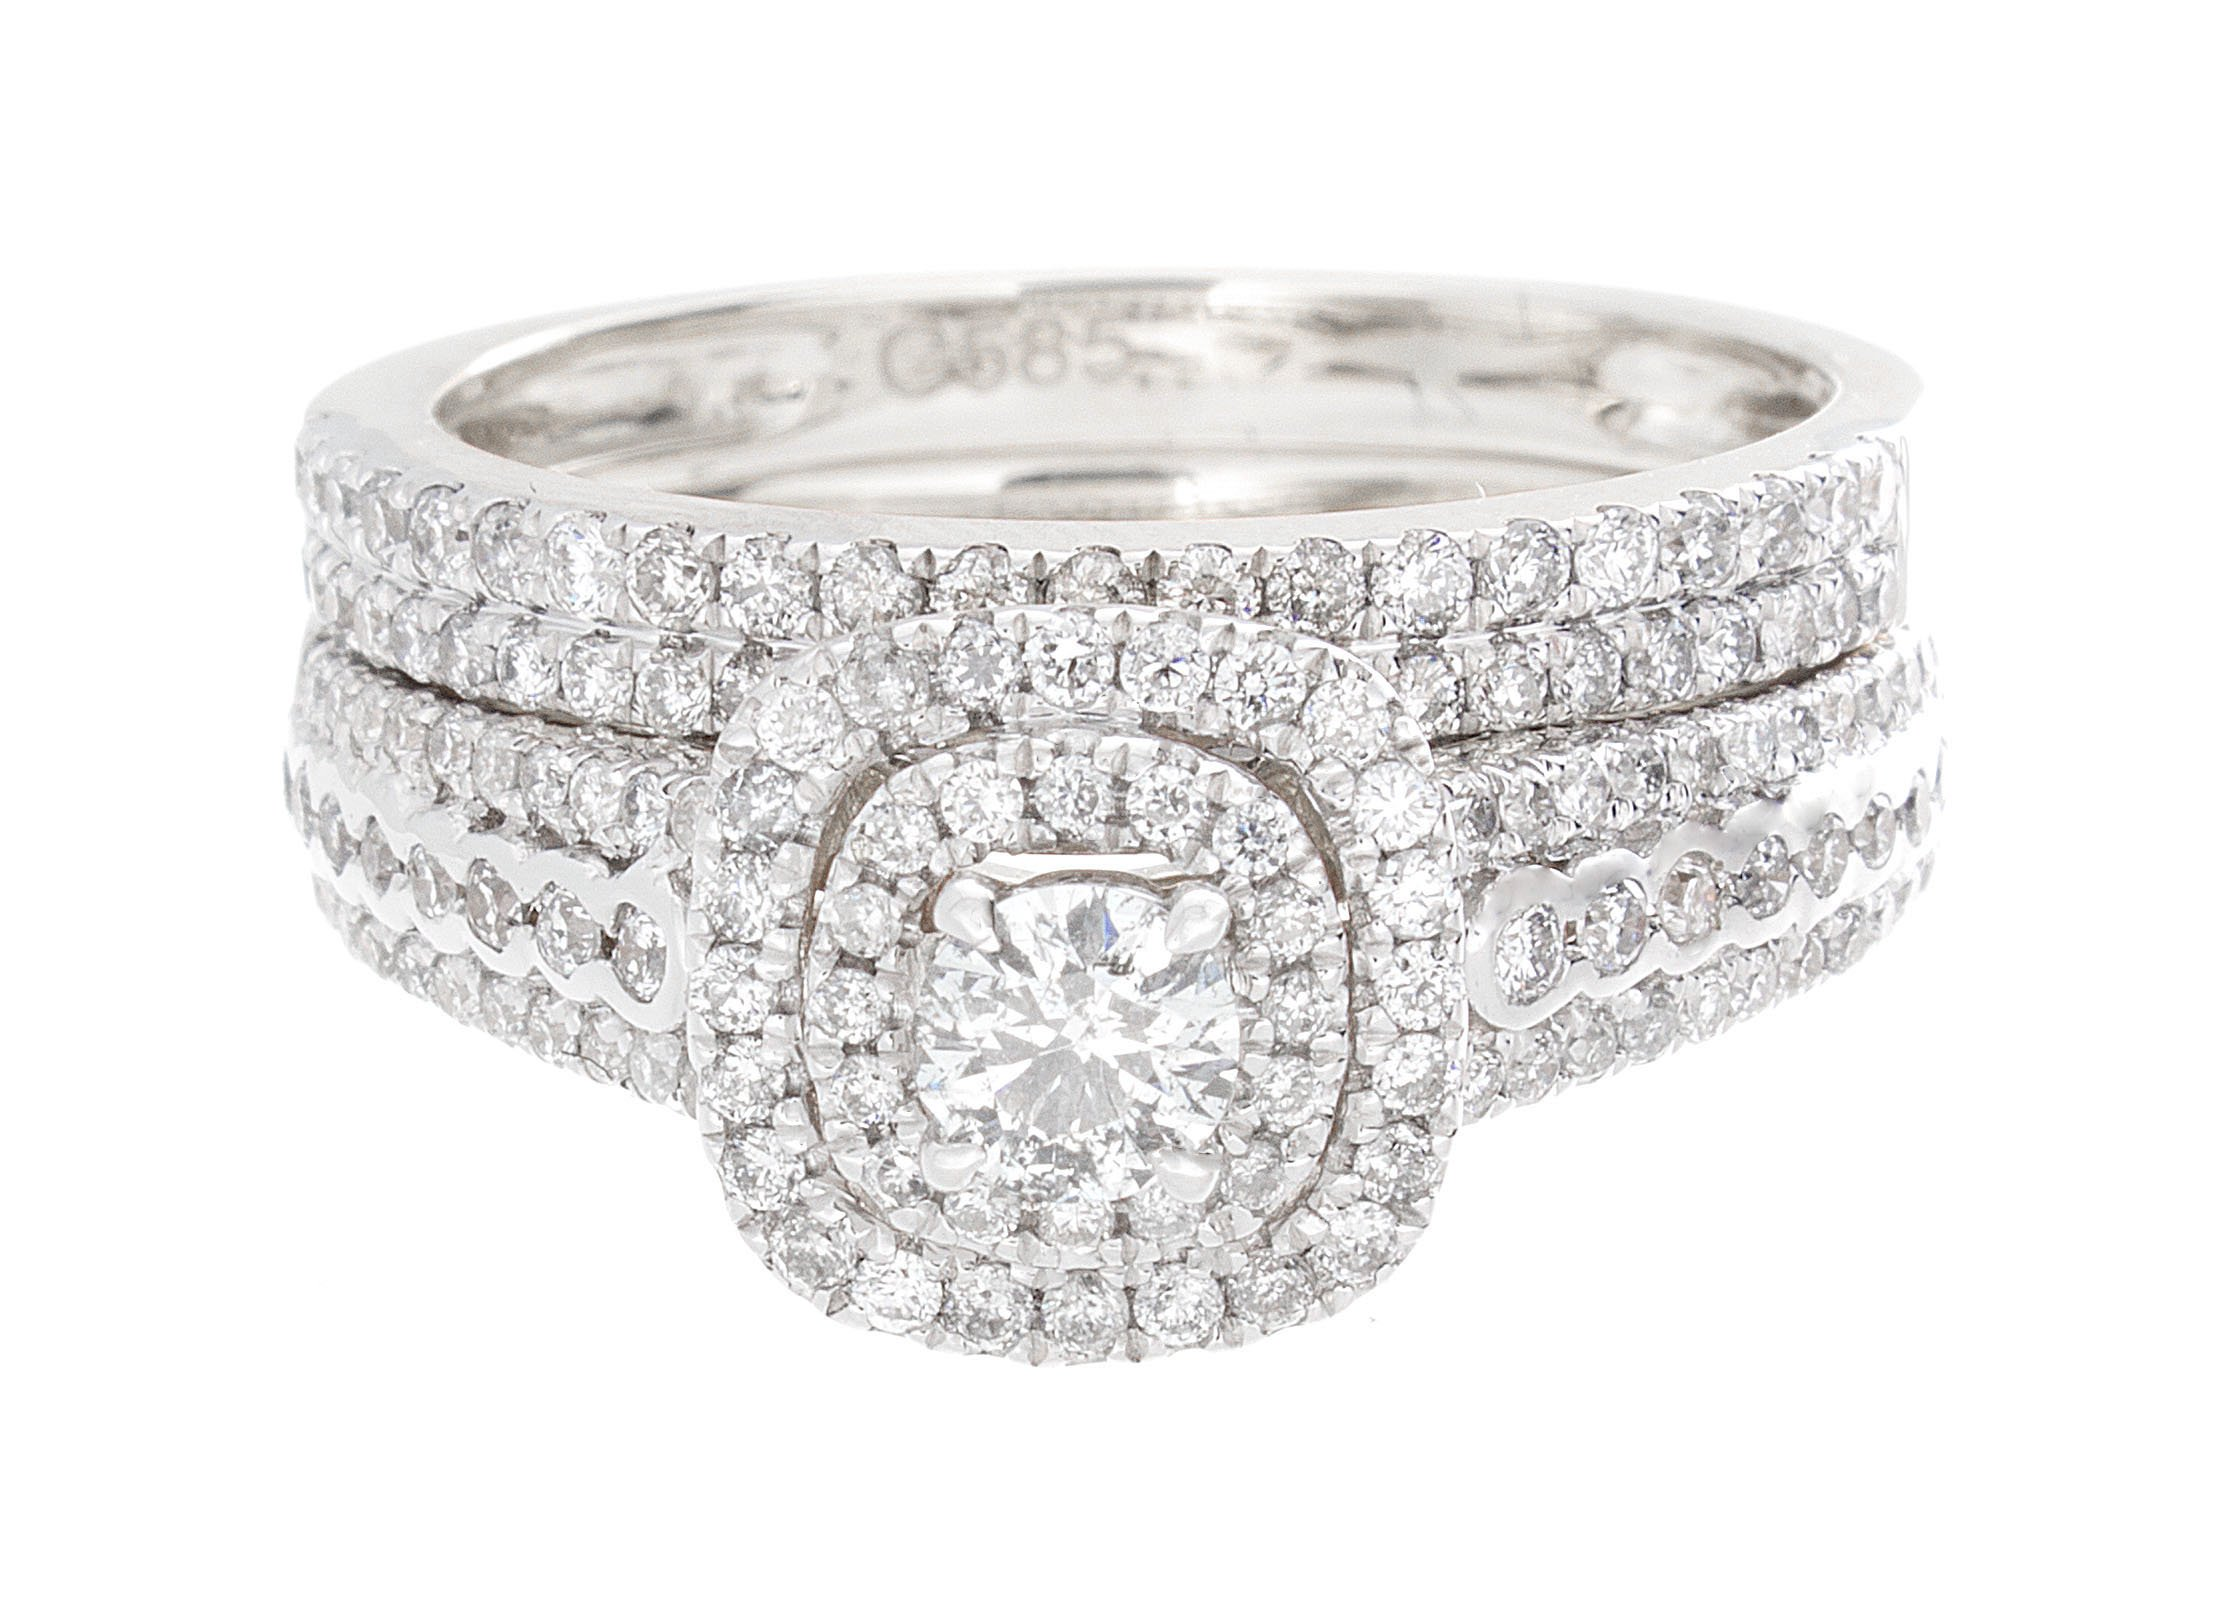 1.00ctw Round Diamond (H-I color, i1-i2 Clarity) in 14K Gold Bridal Ring